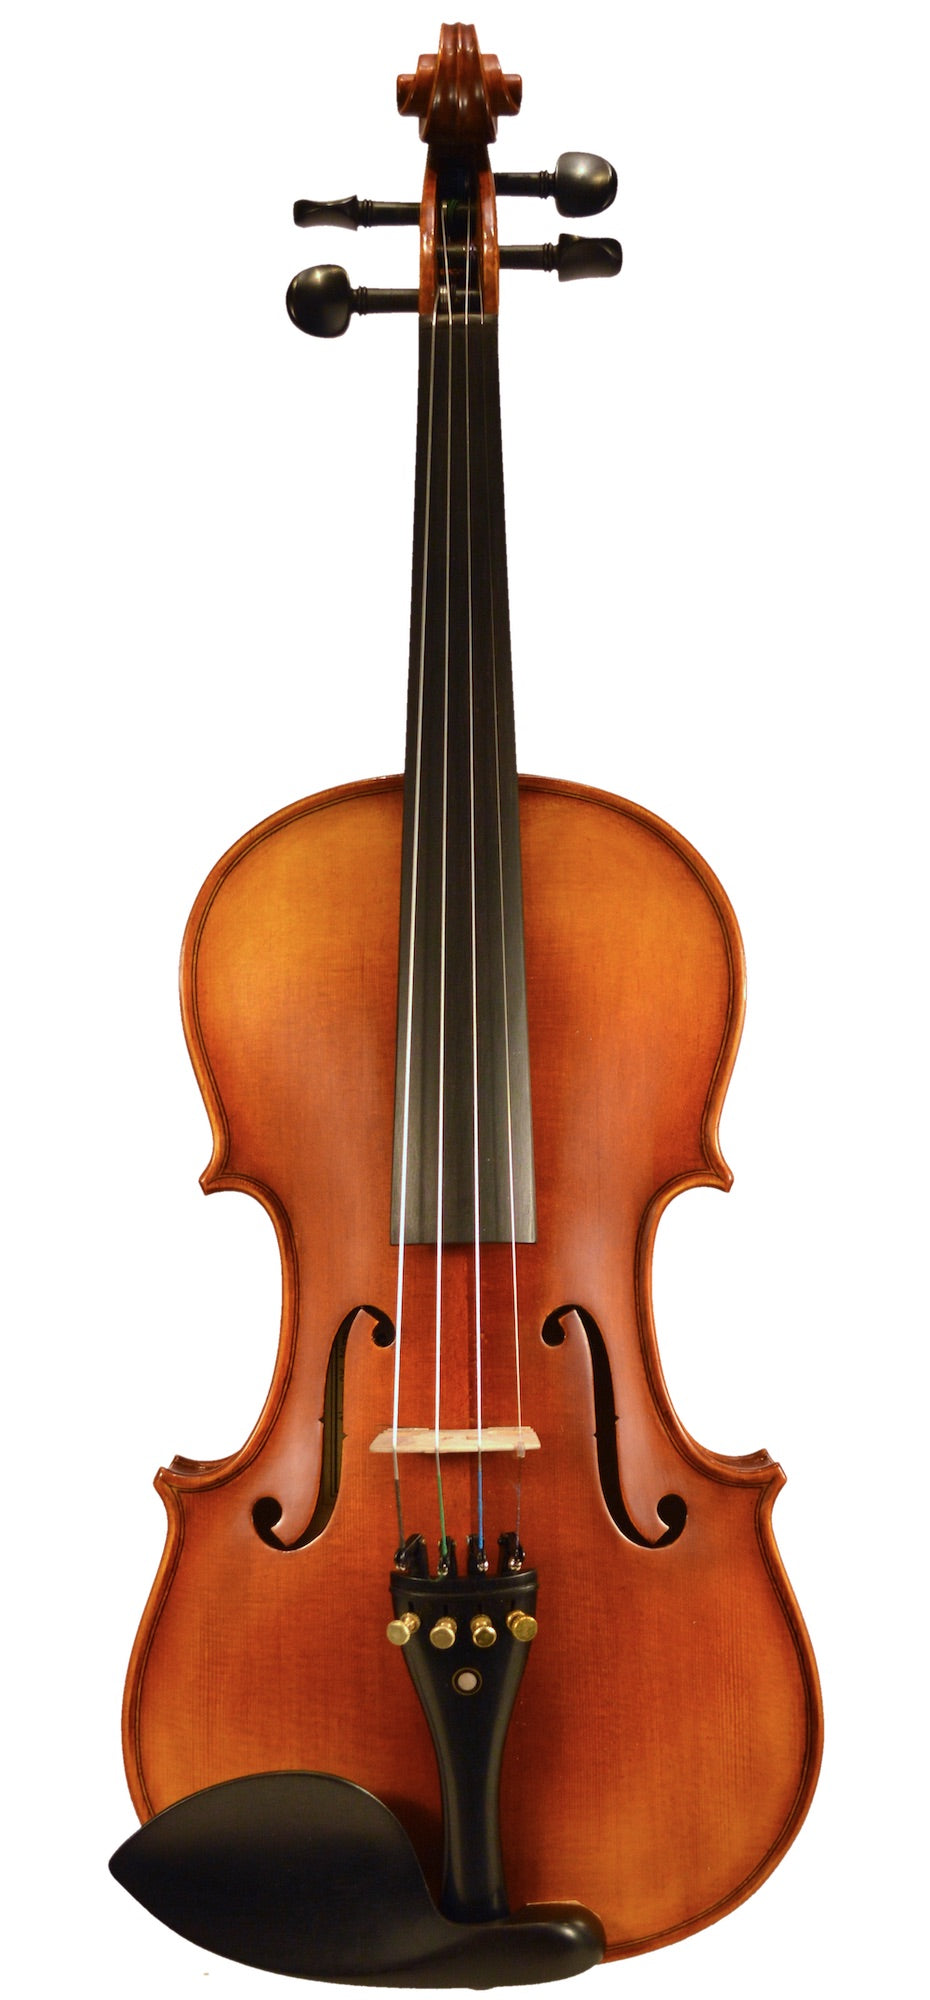 Sandner SV-316 Advanced Violin